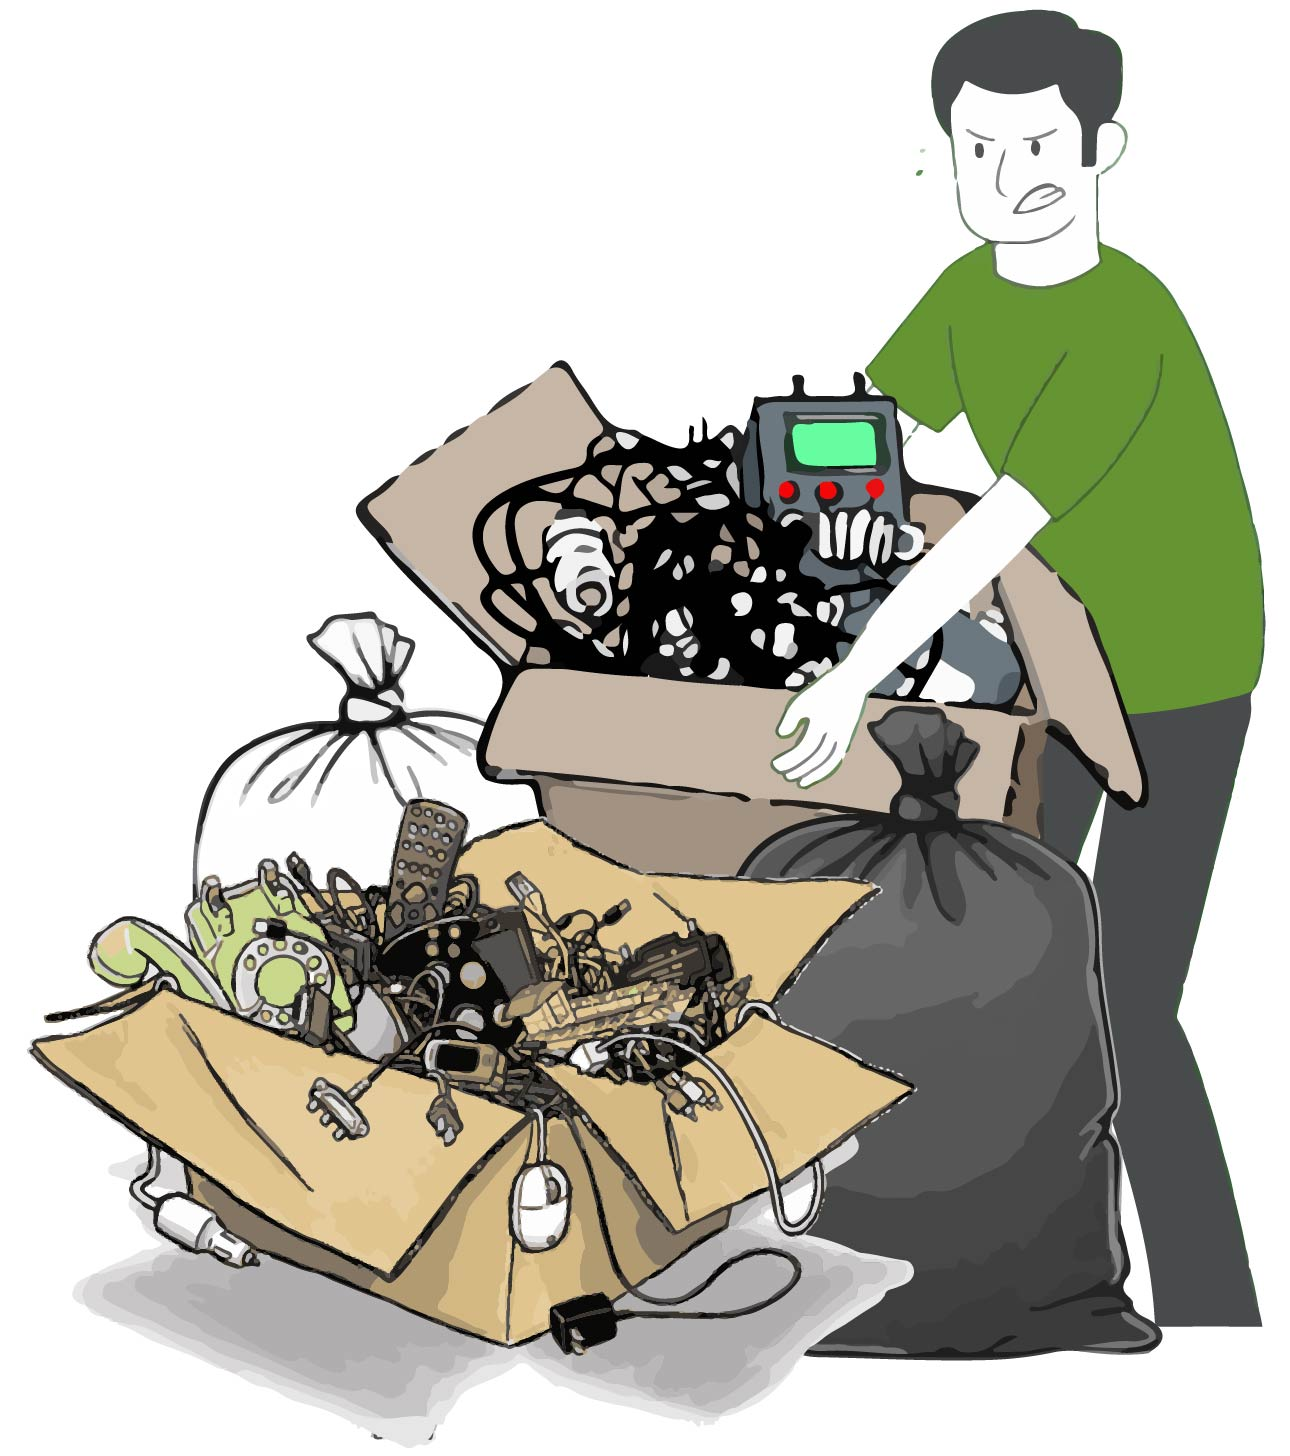 Quick Junk Removal Services in Tualatin, OR